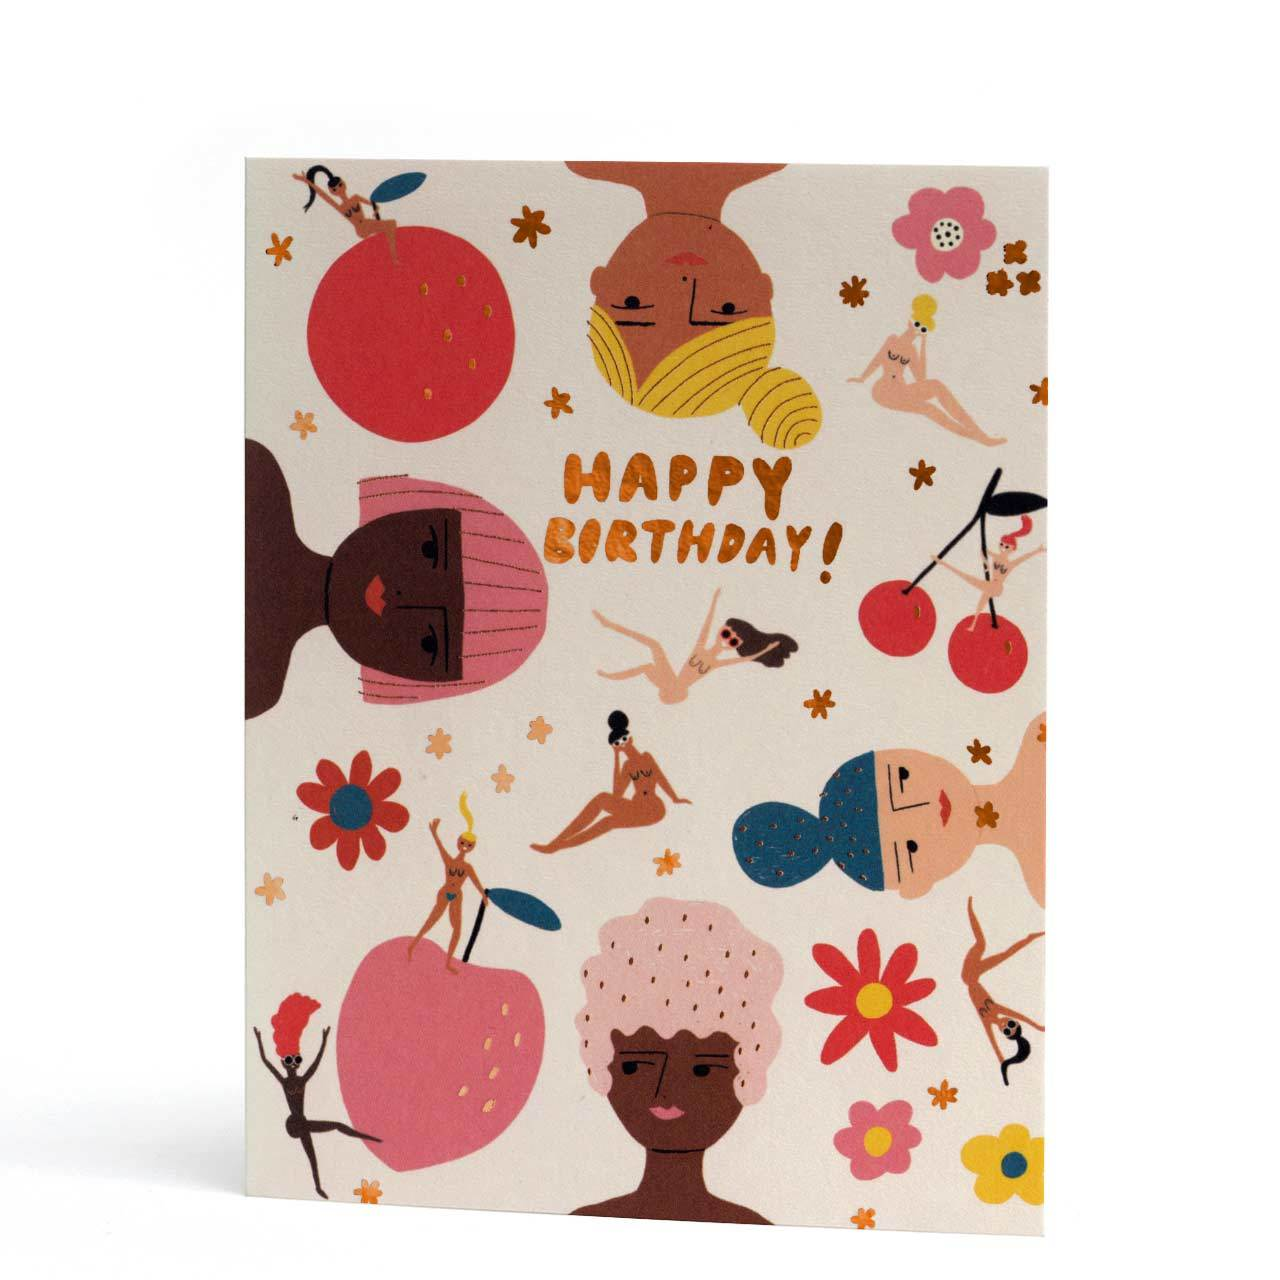 Fruity Nudes Copper Foil Birthday Card